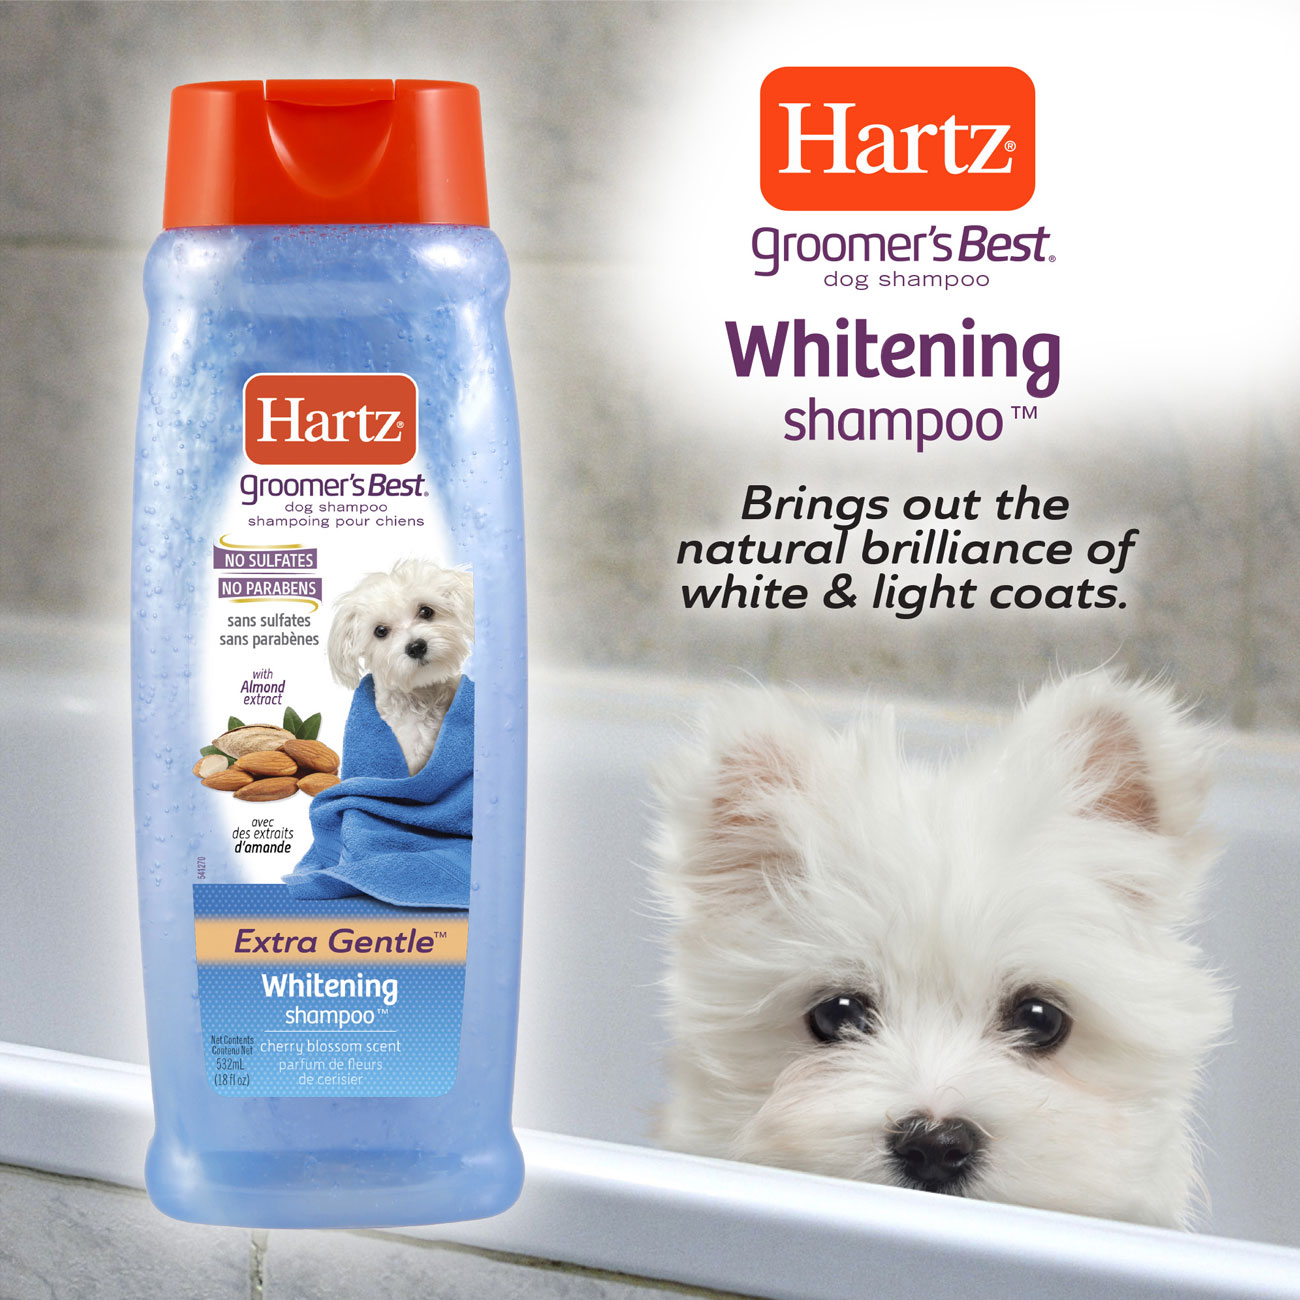 Hartz groomers best whitening shampoo. Brings out the natural brilliance in white and light coats.